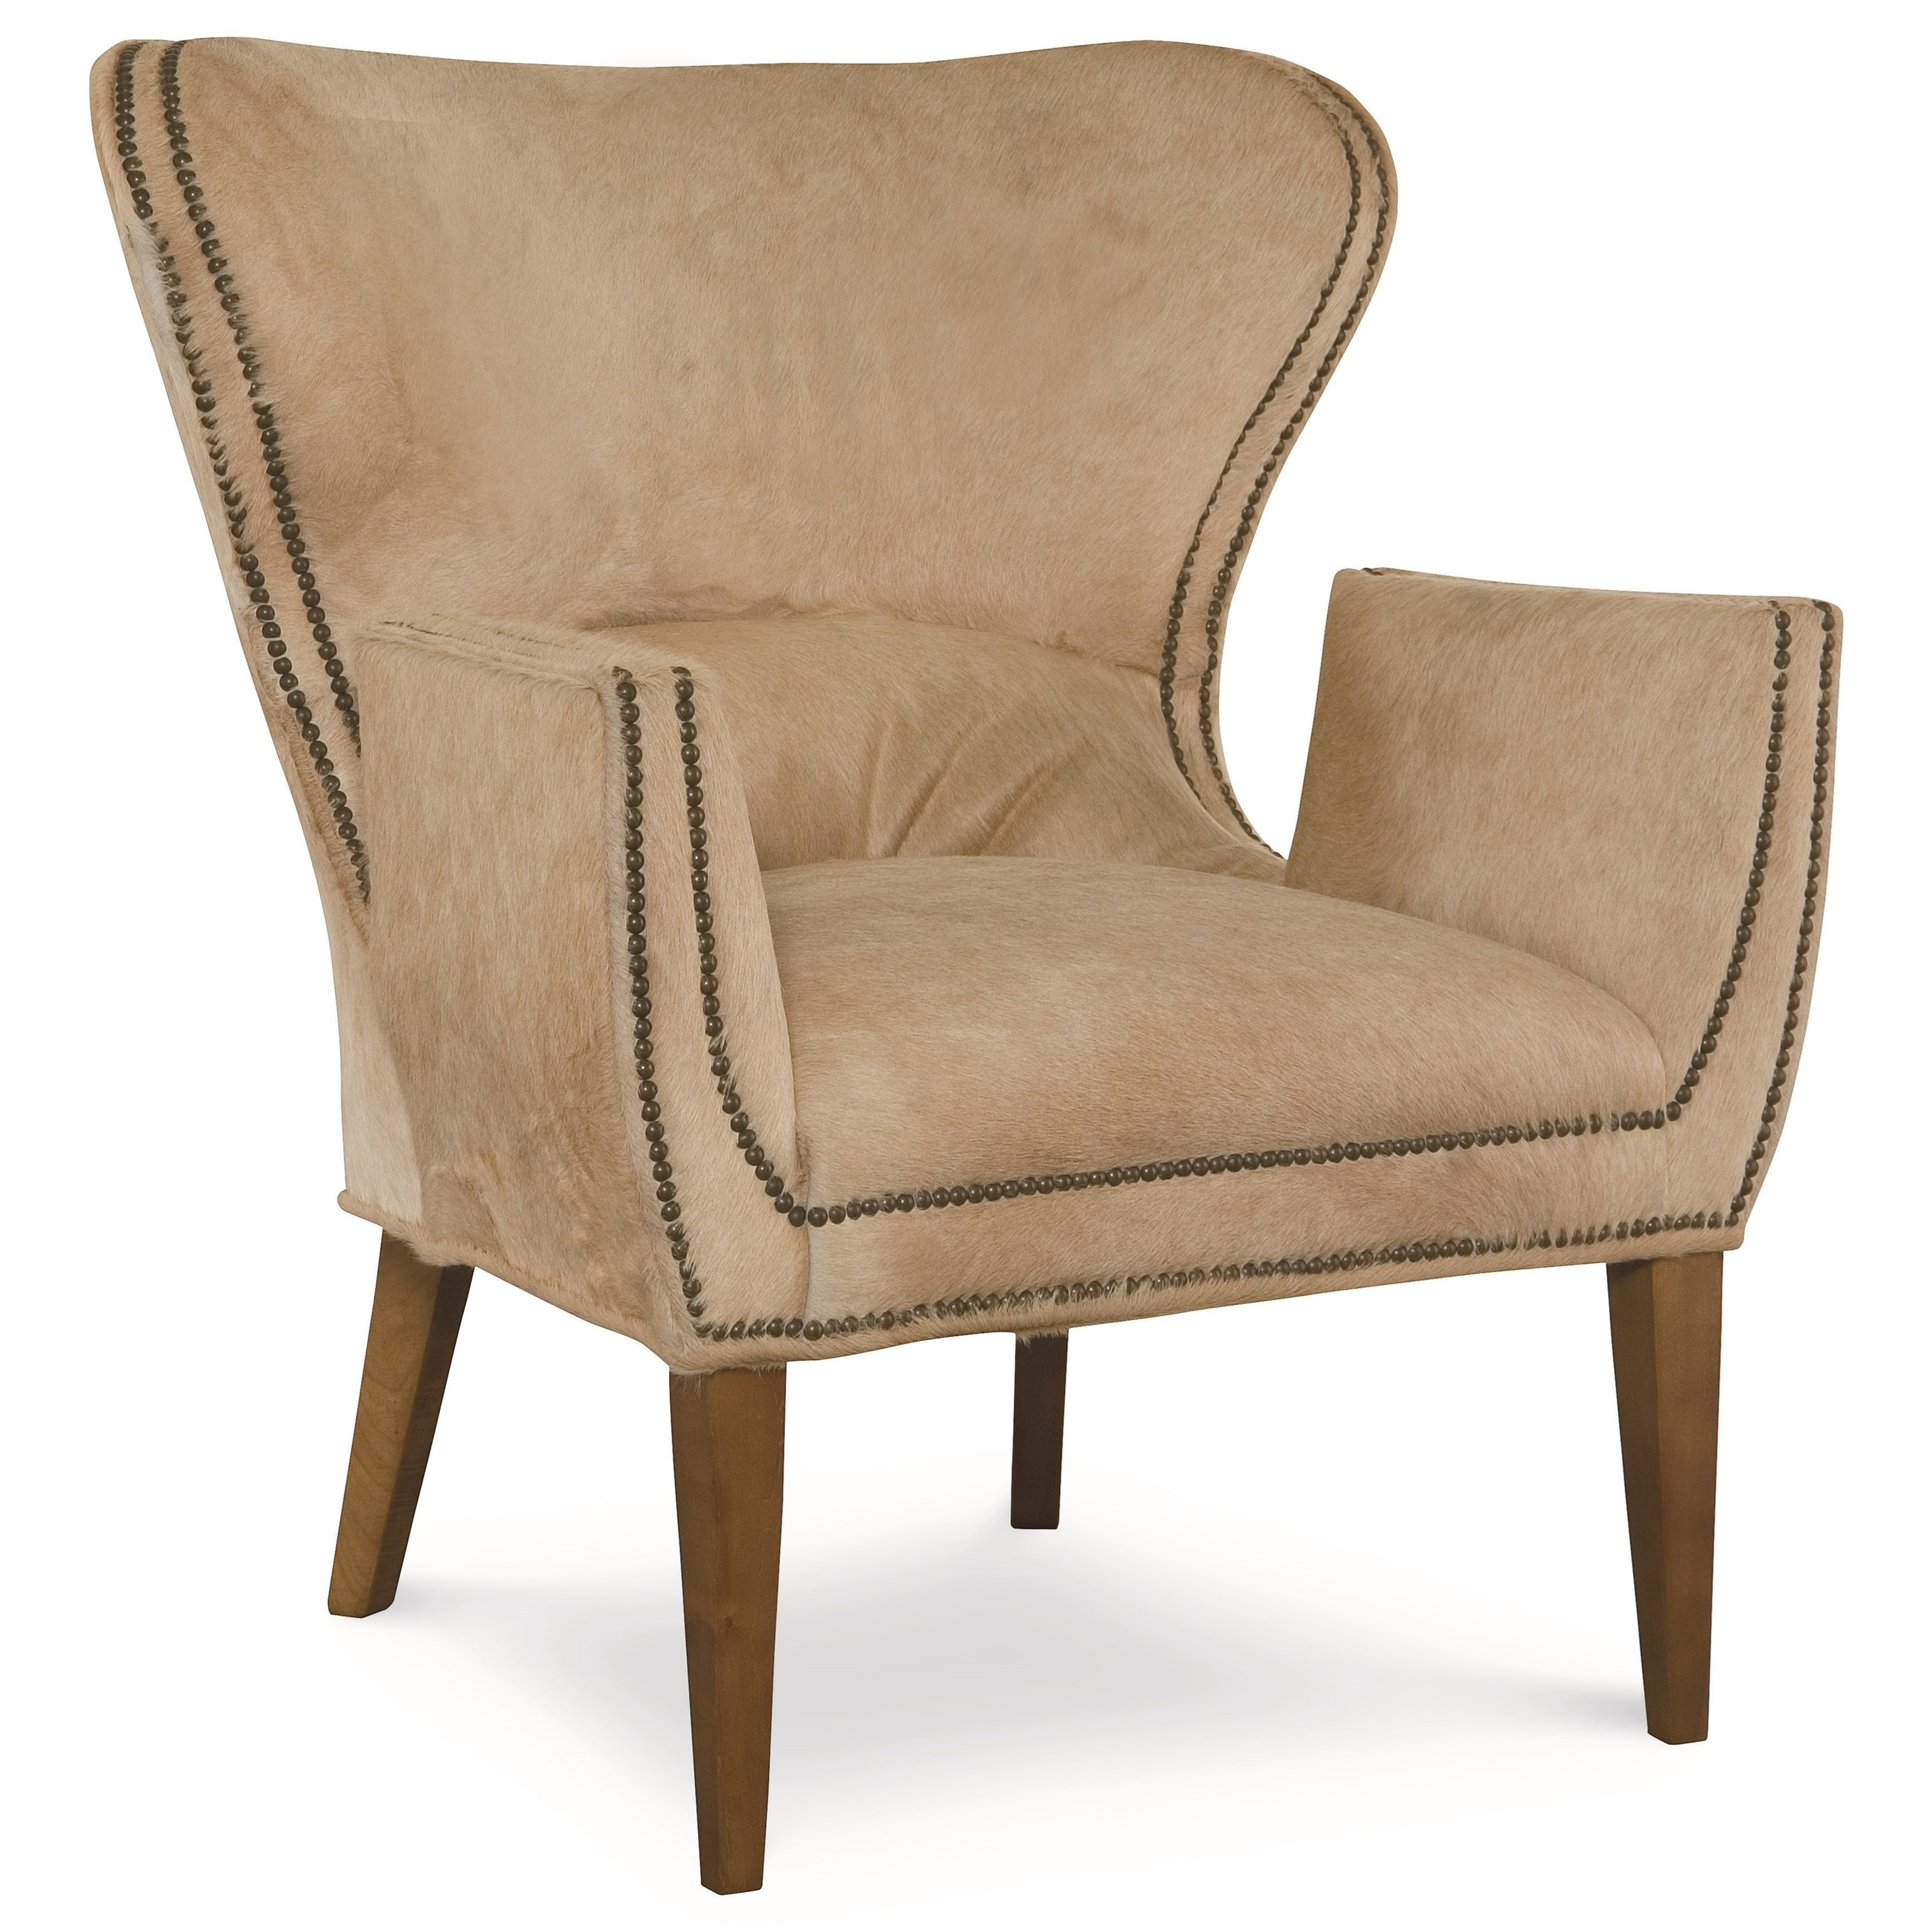 Gustav Chair by C.R. Laine at Alison Craig Home Furnishings